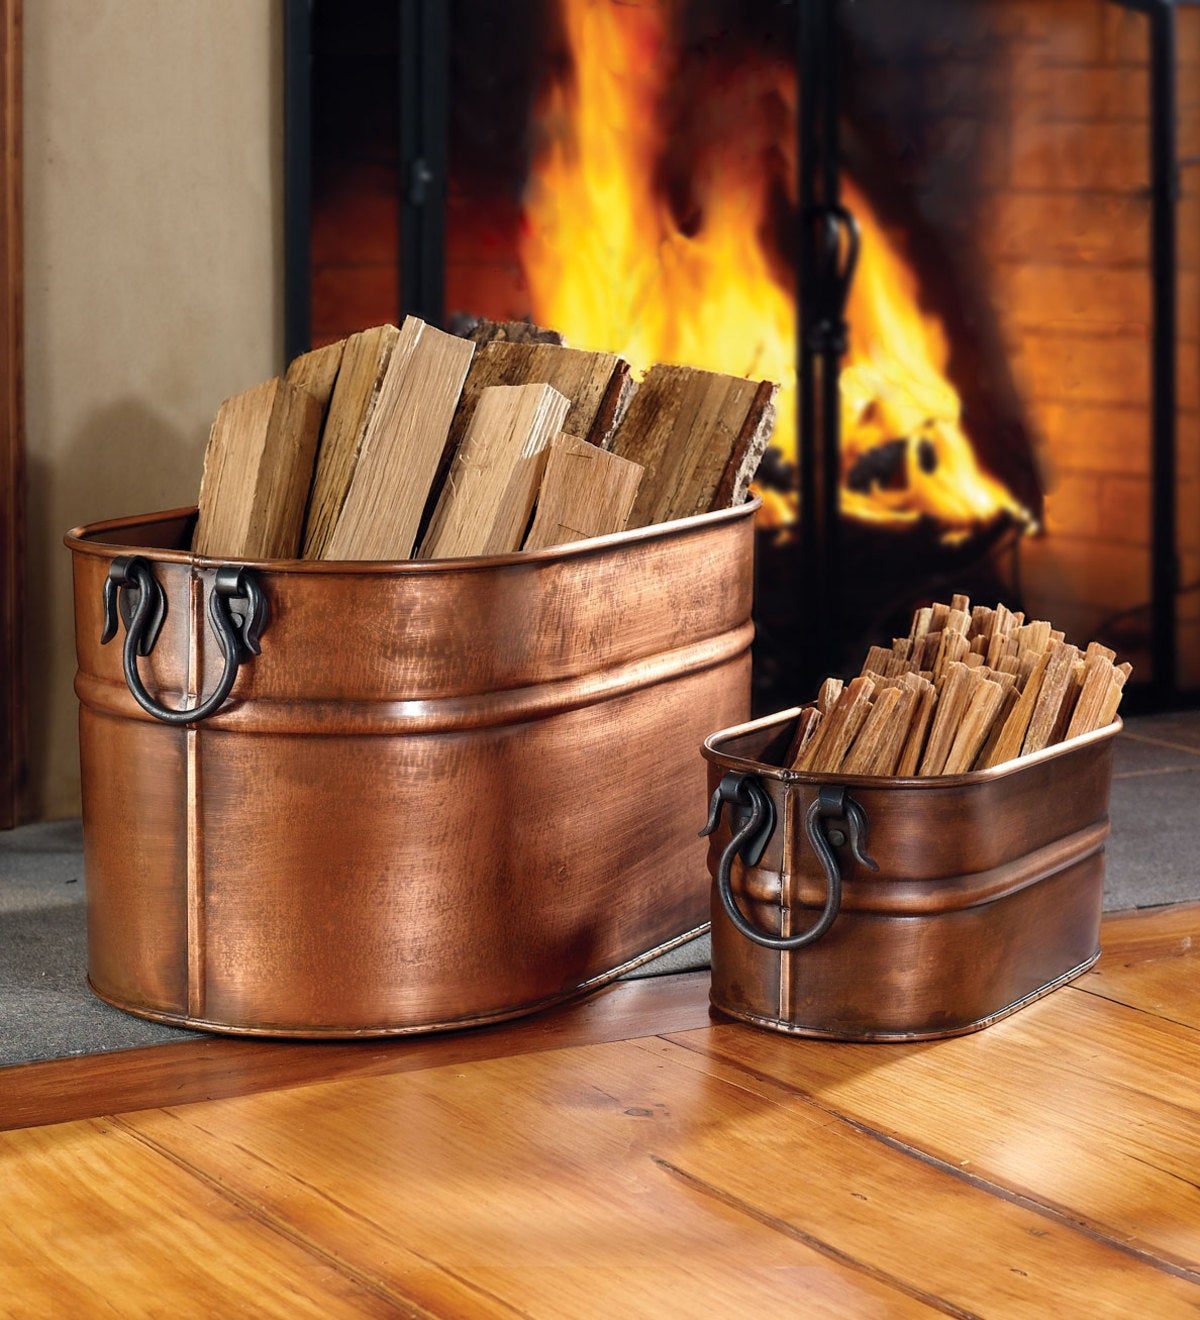 Large Copper Finished Firewood Bucket